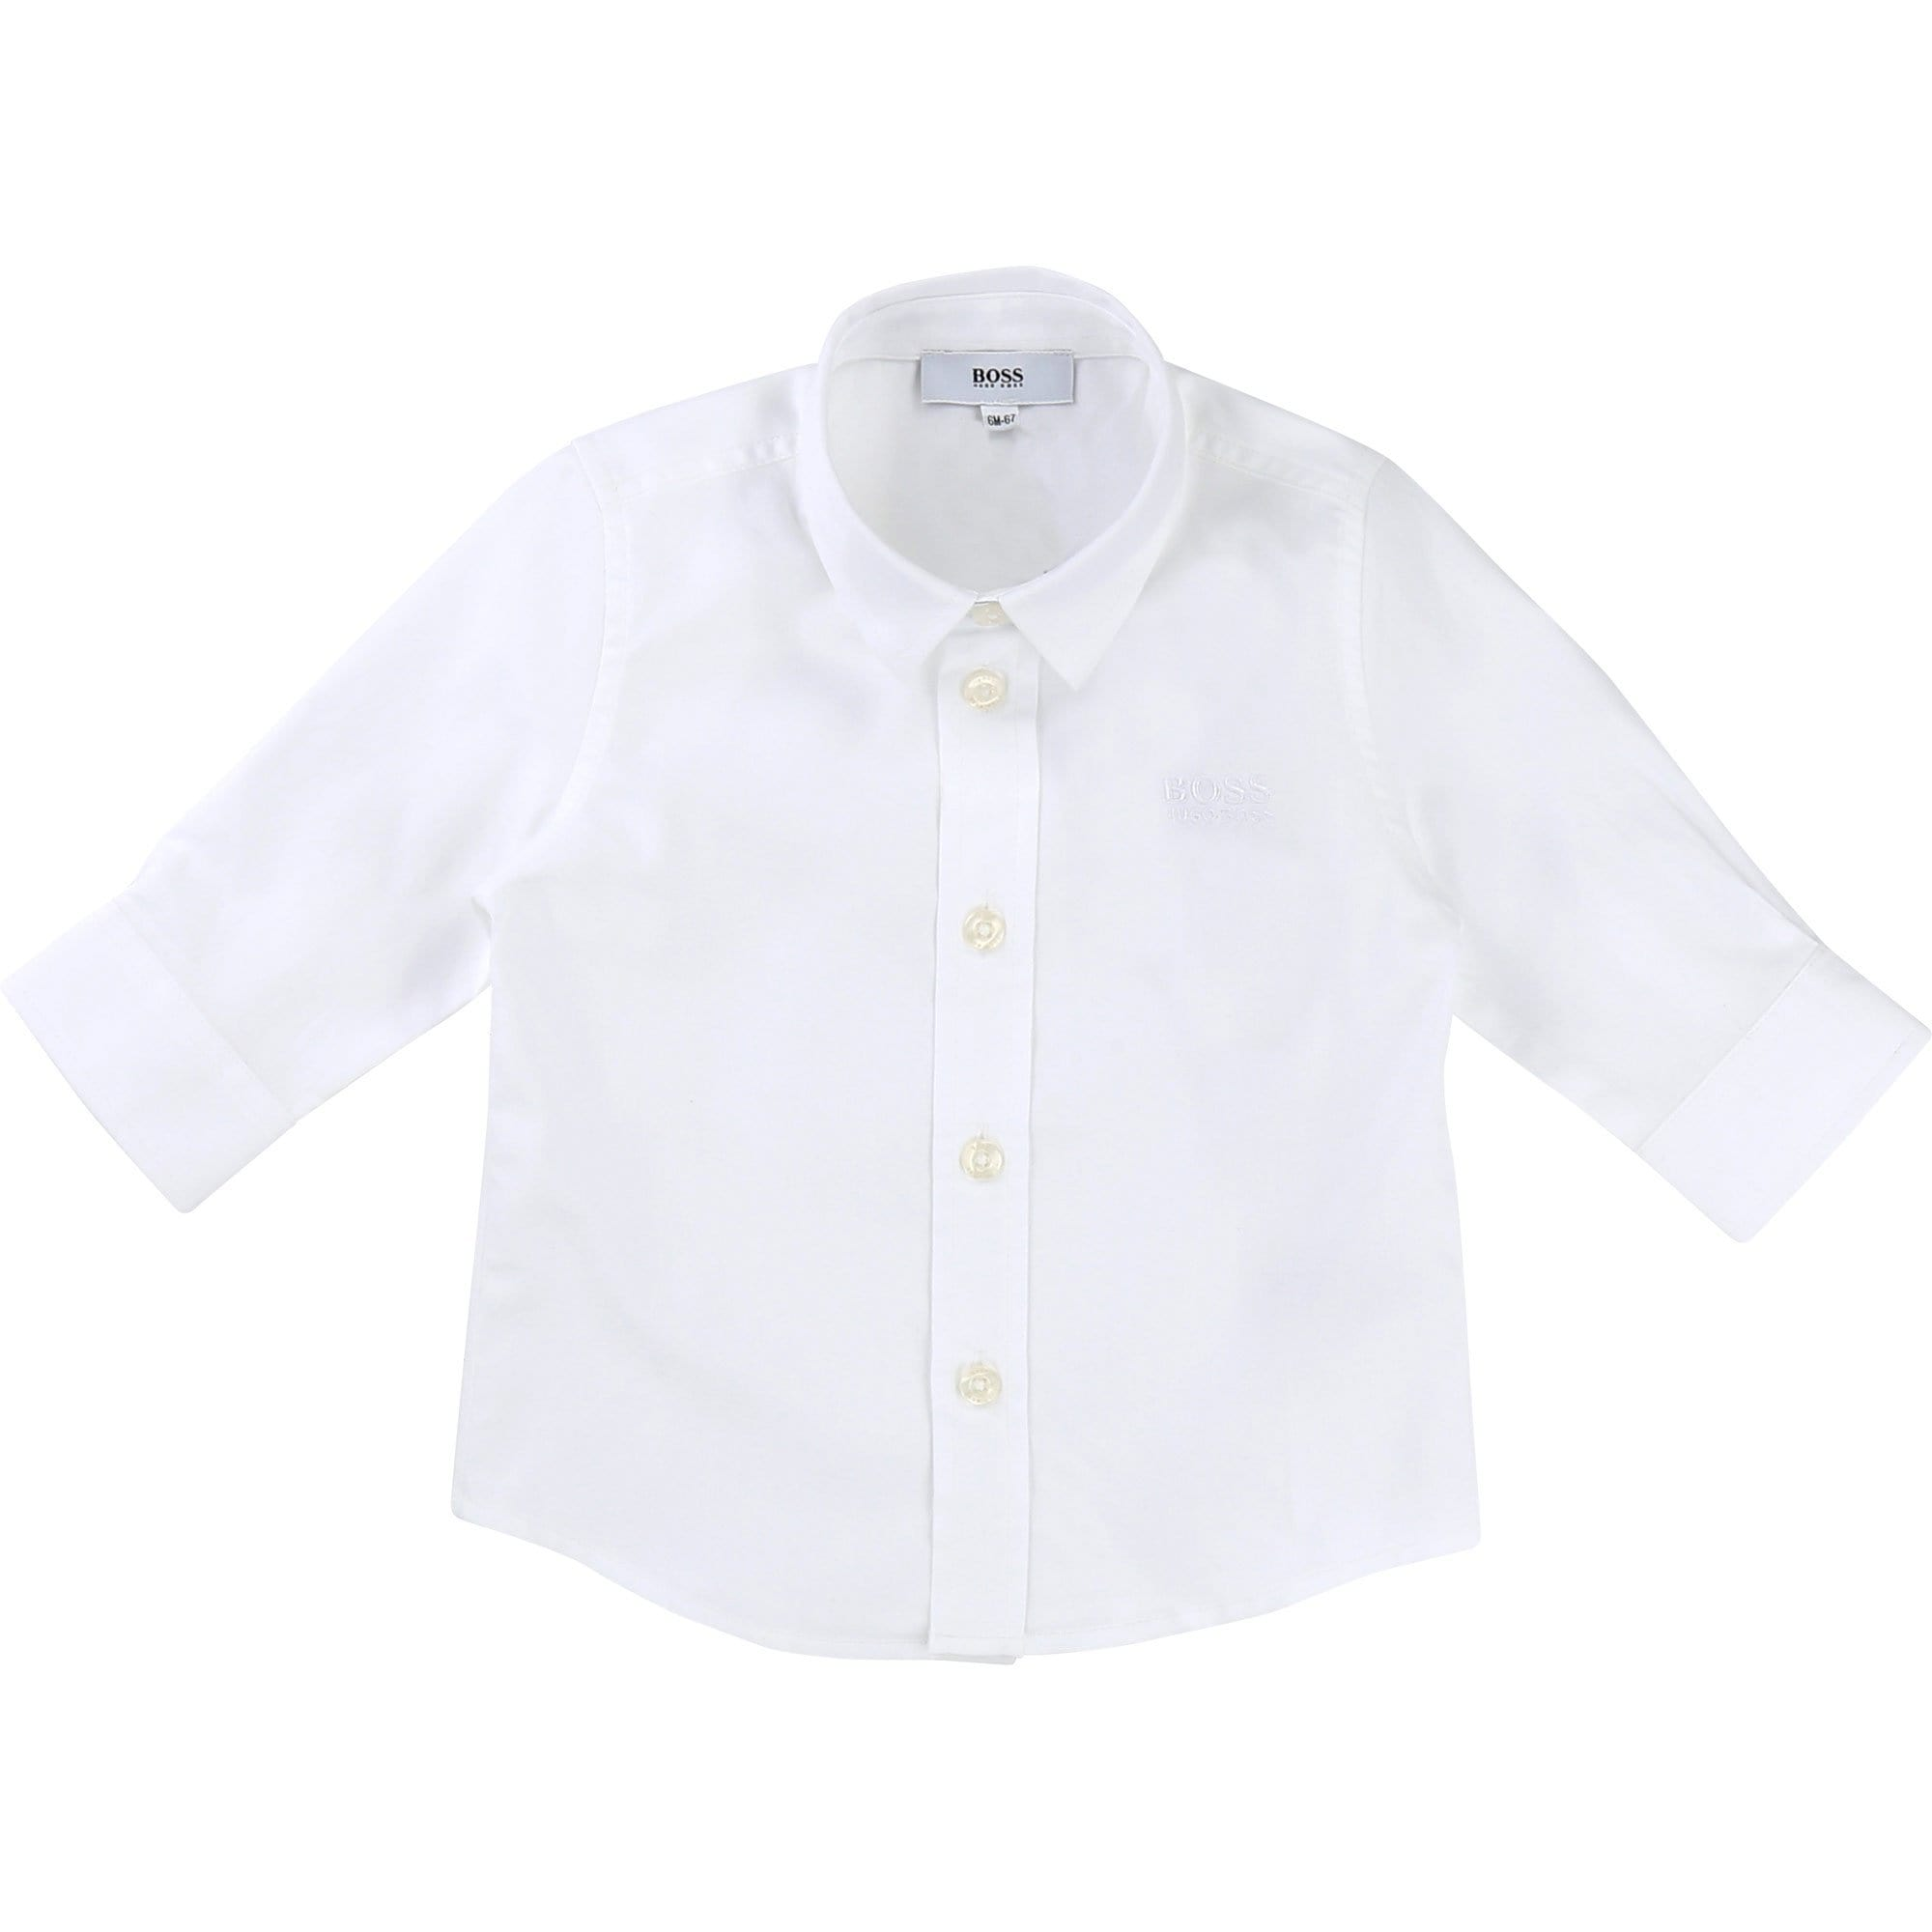 Hugo Boss Long Sleeve White Shirt (4703686426755)